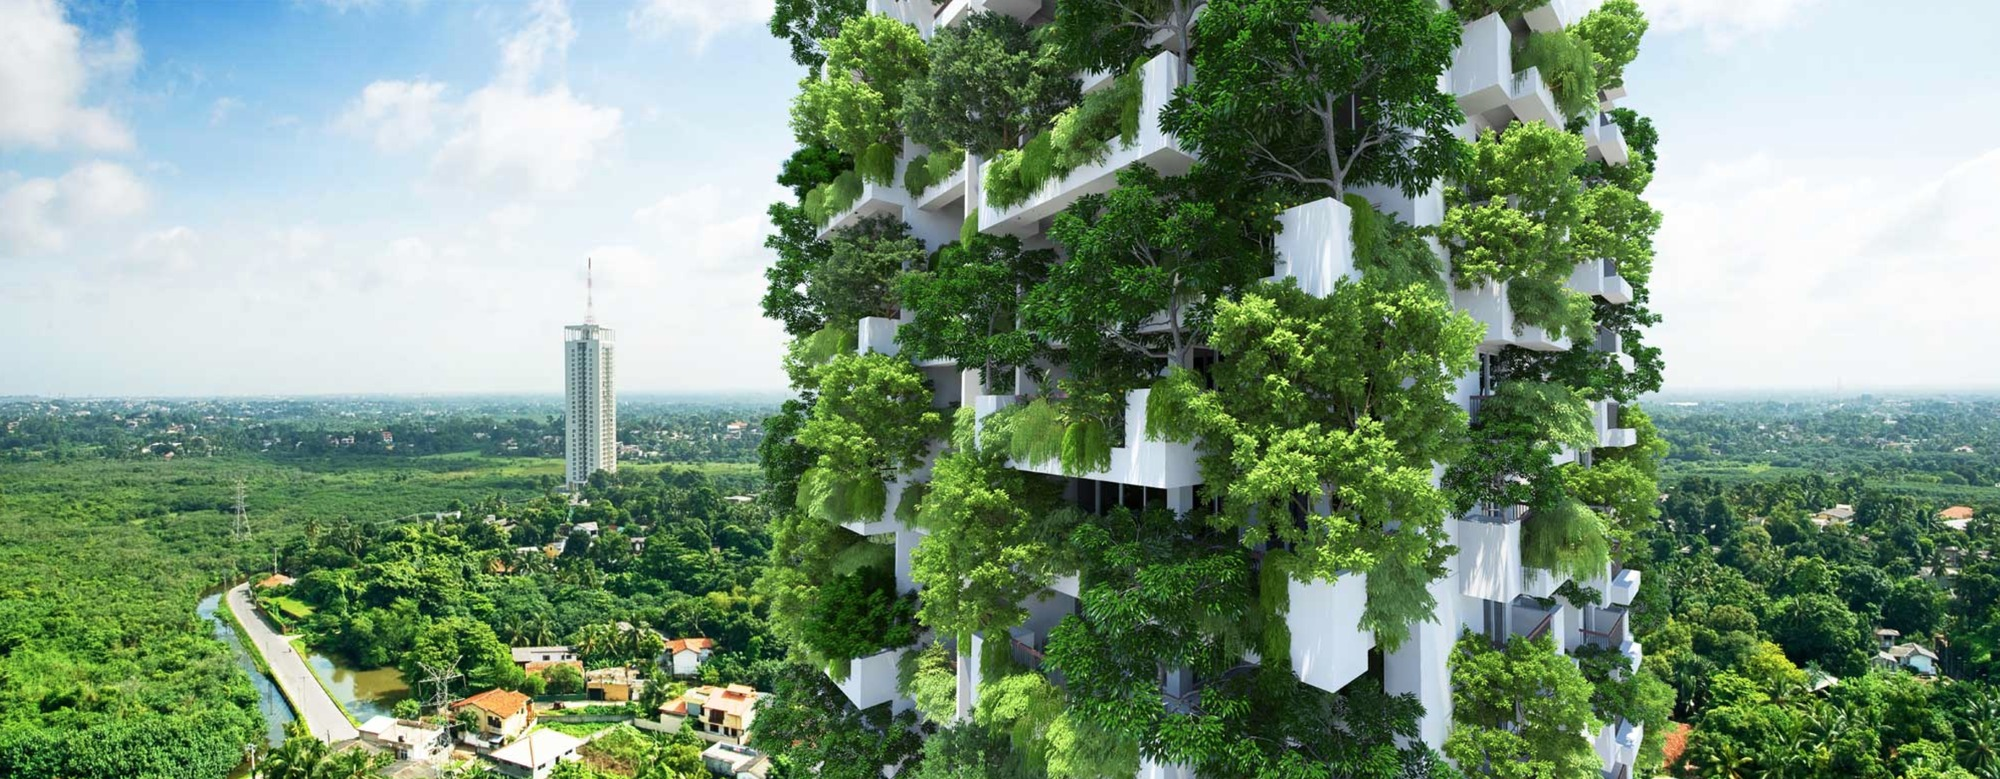 Vertikal Gardinen Vertical Garden Installations Archives Living Walls And